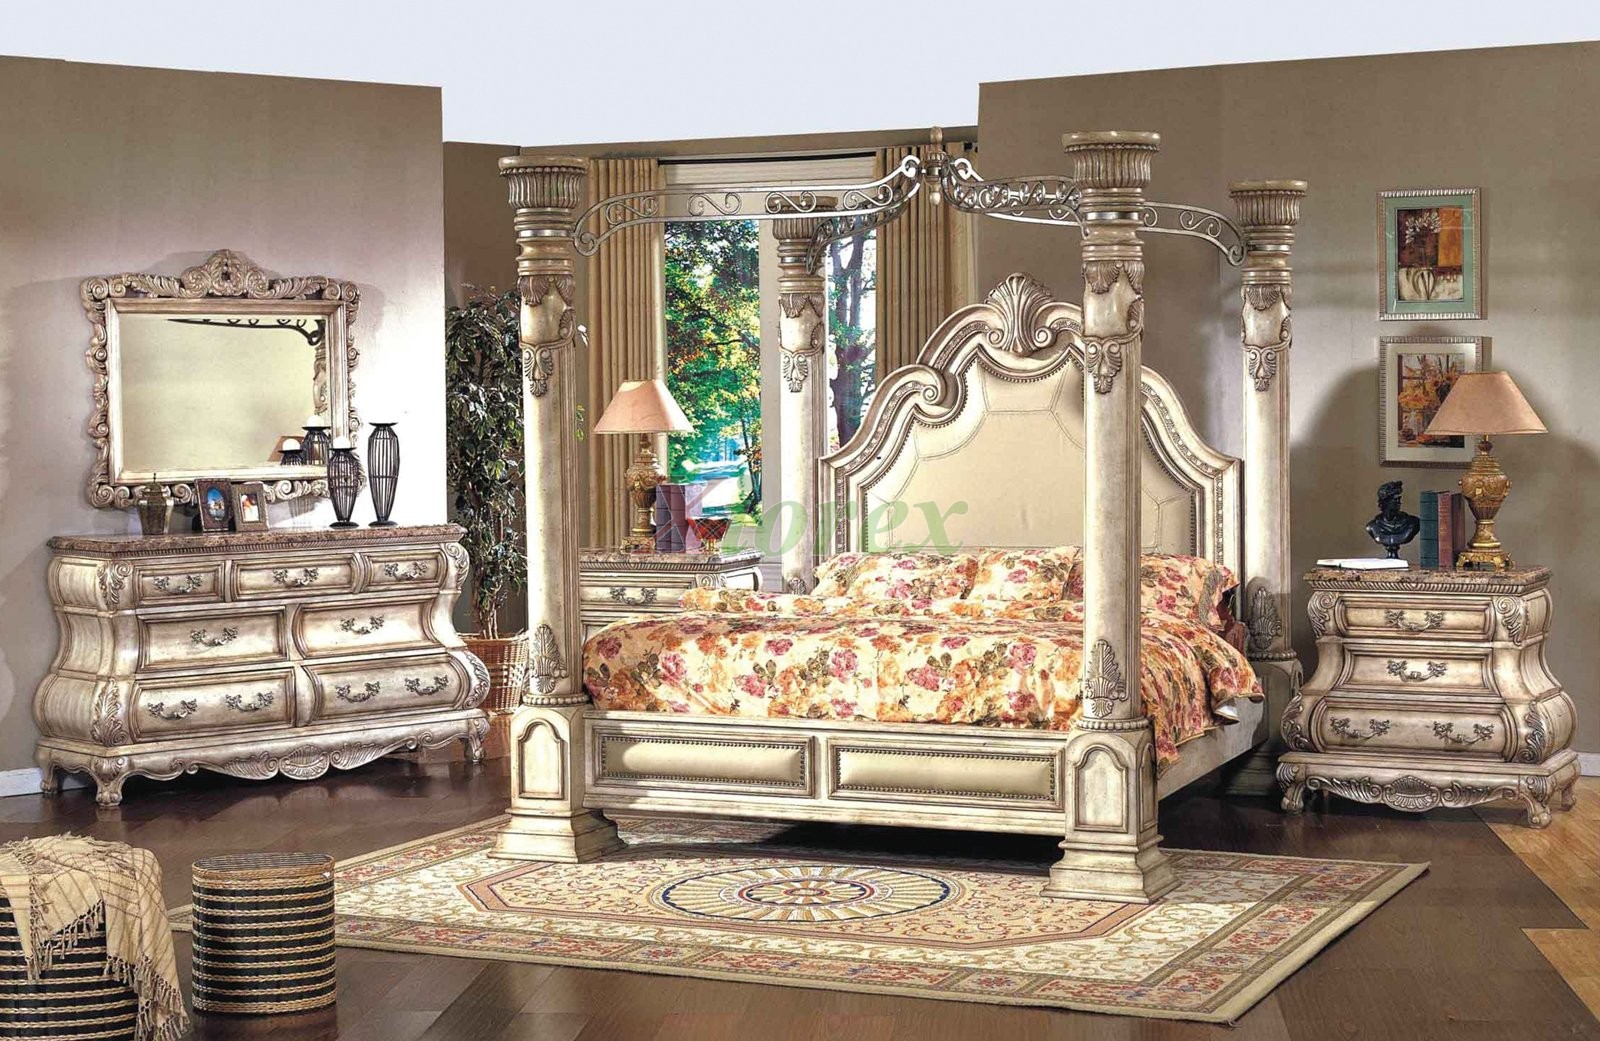 Poster Bedroom Set W/ Canopy Queen Bed And Canopy King Bed | Xiorex.